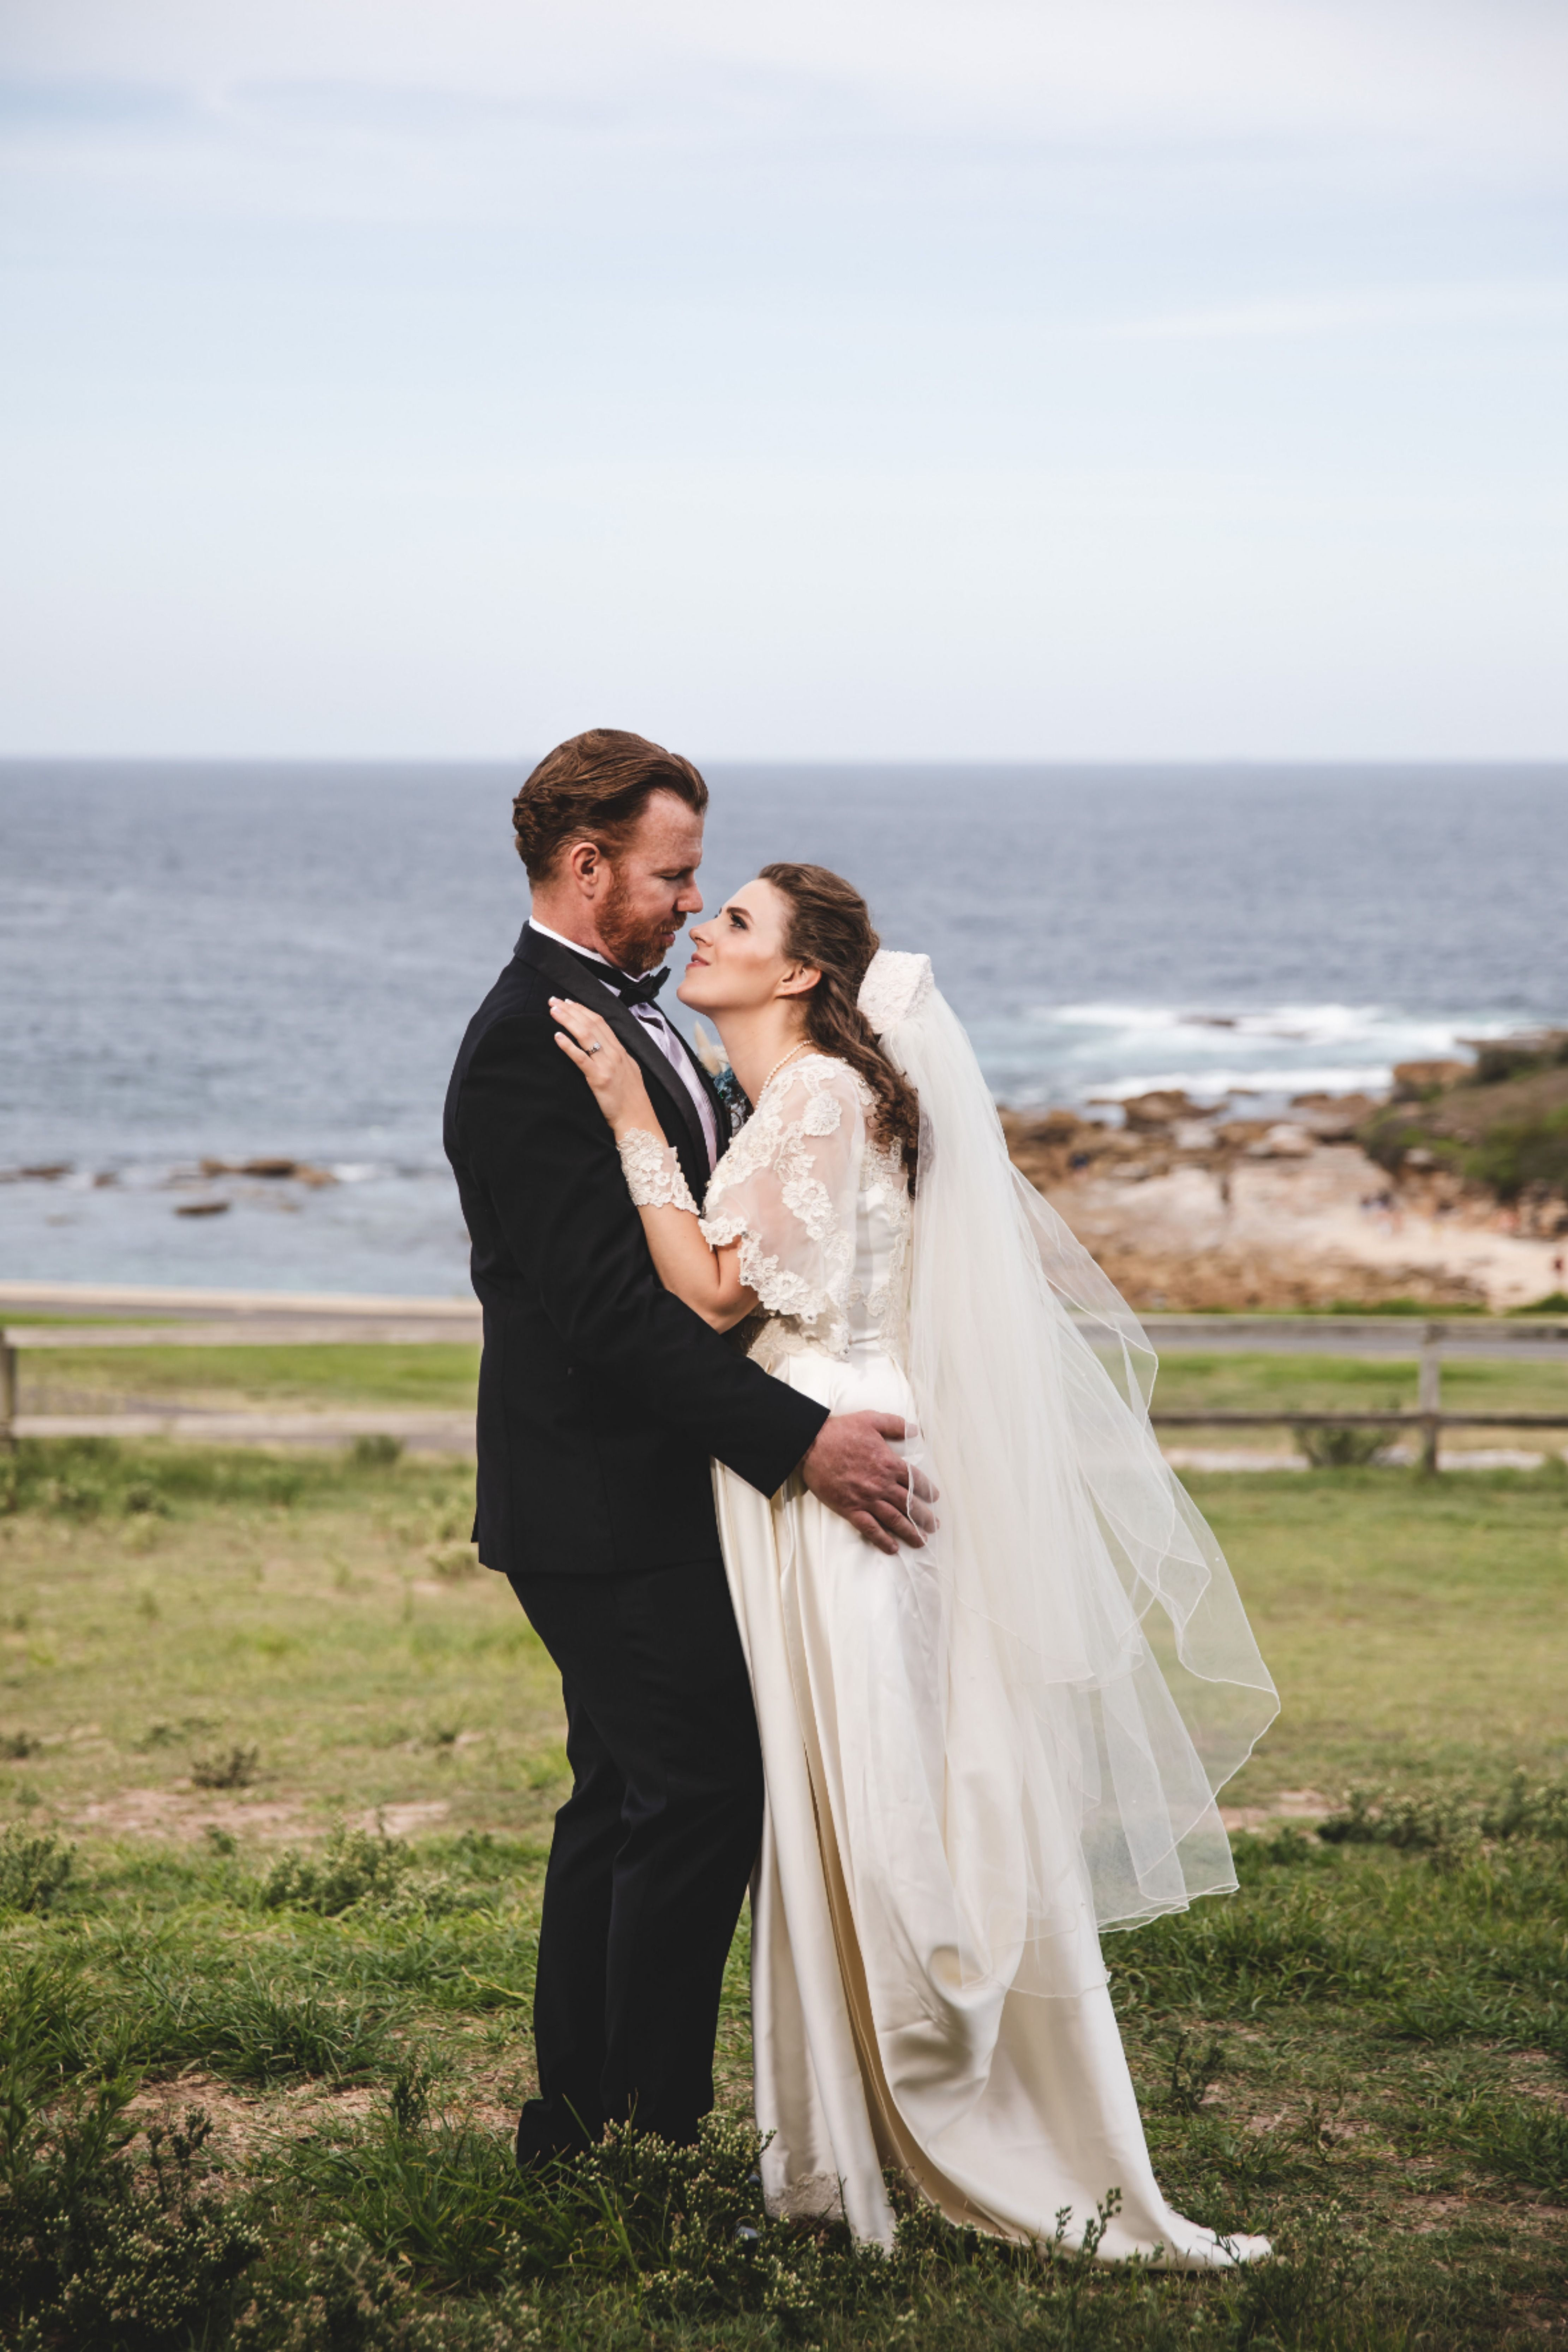 Wedding Abroad Couple Pose Reference Wedding Photography Inspiration Vintage In 2020 Wedding Photography Inspiration Wedding Photography Travel Wedding Photographer